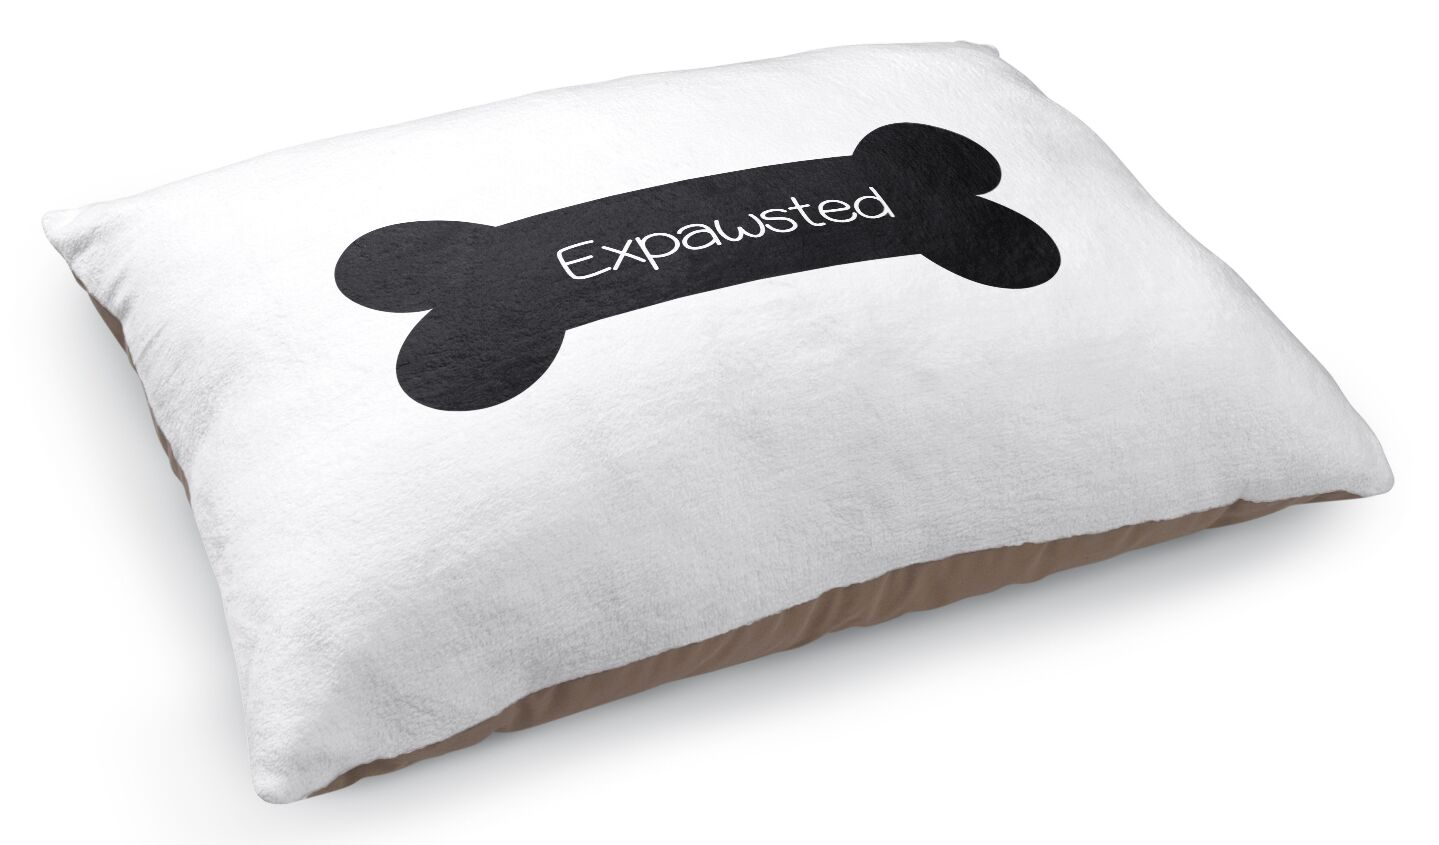 Expawsted Pet Pillow